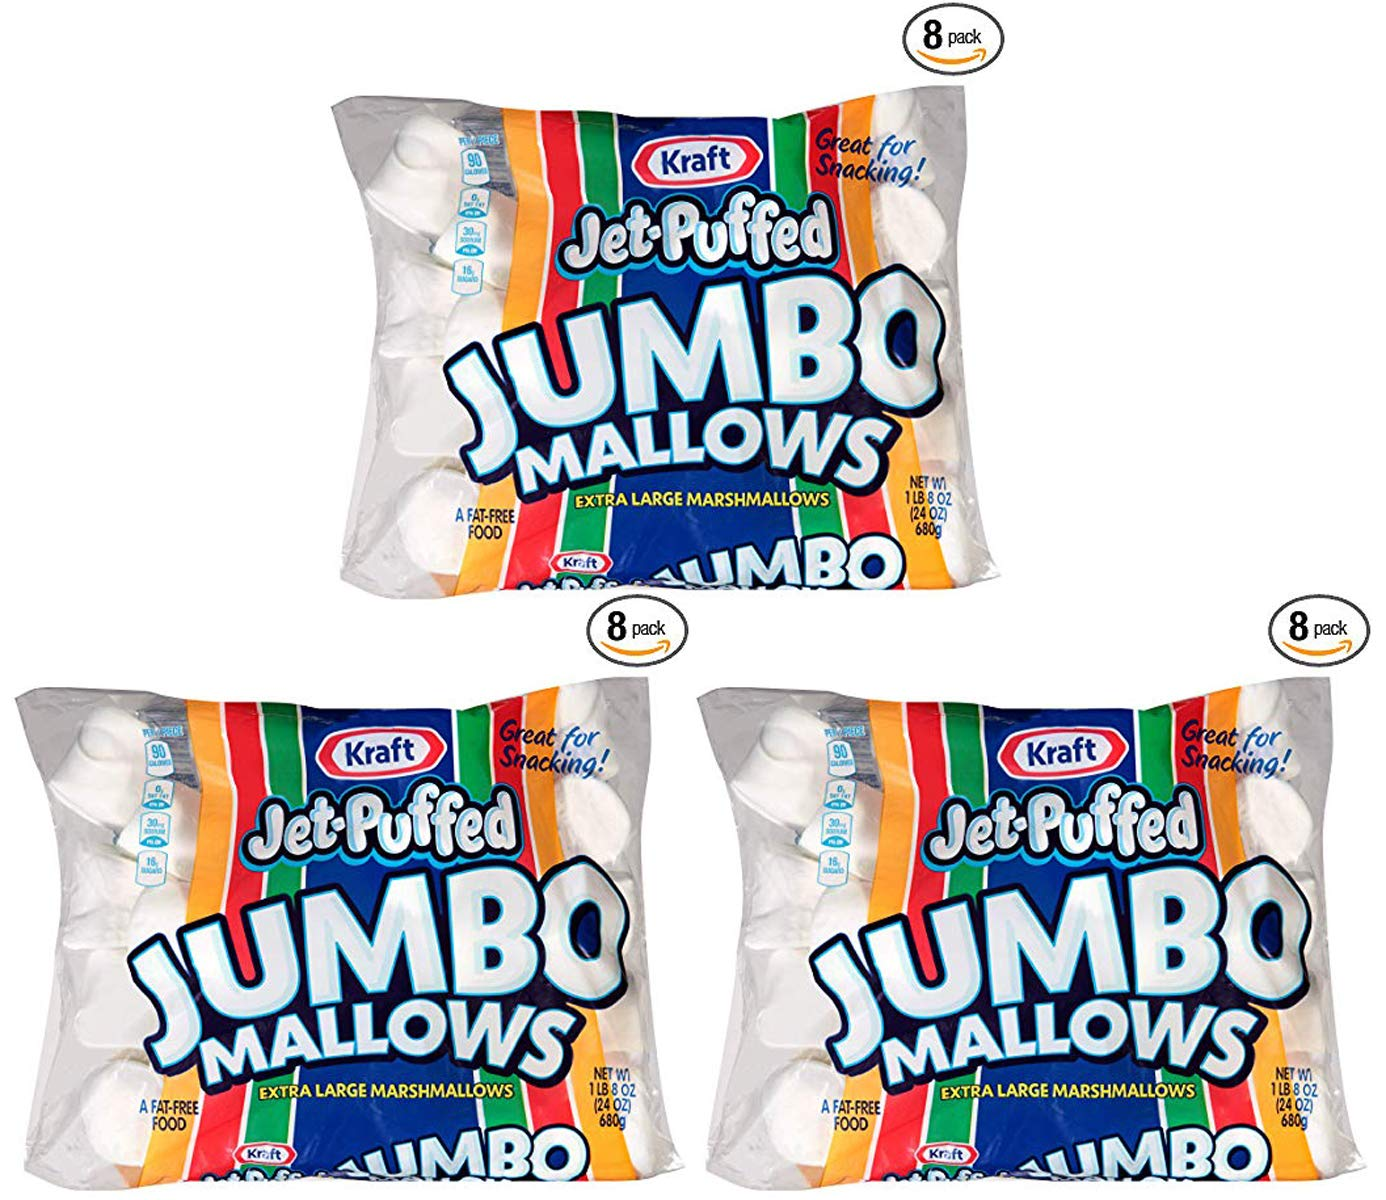 nhy Jumbo Marshmallows, 24 oz Bag, 3 Packs (8 Pack) by Jet-Puffed